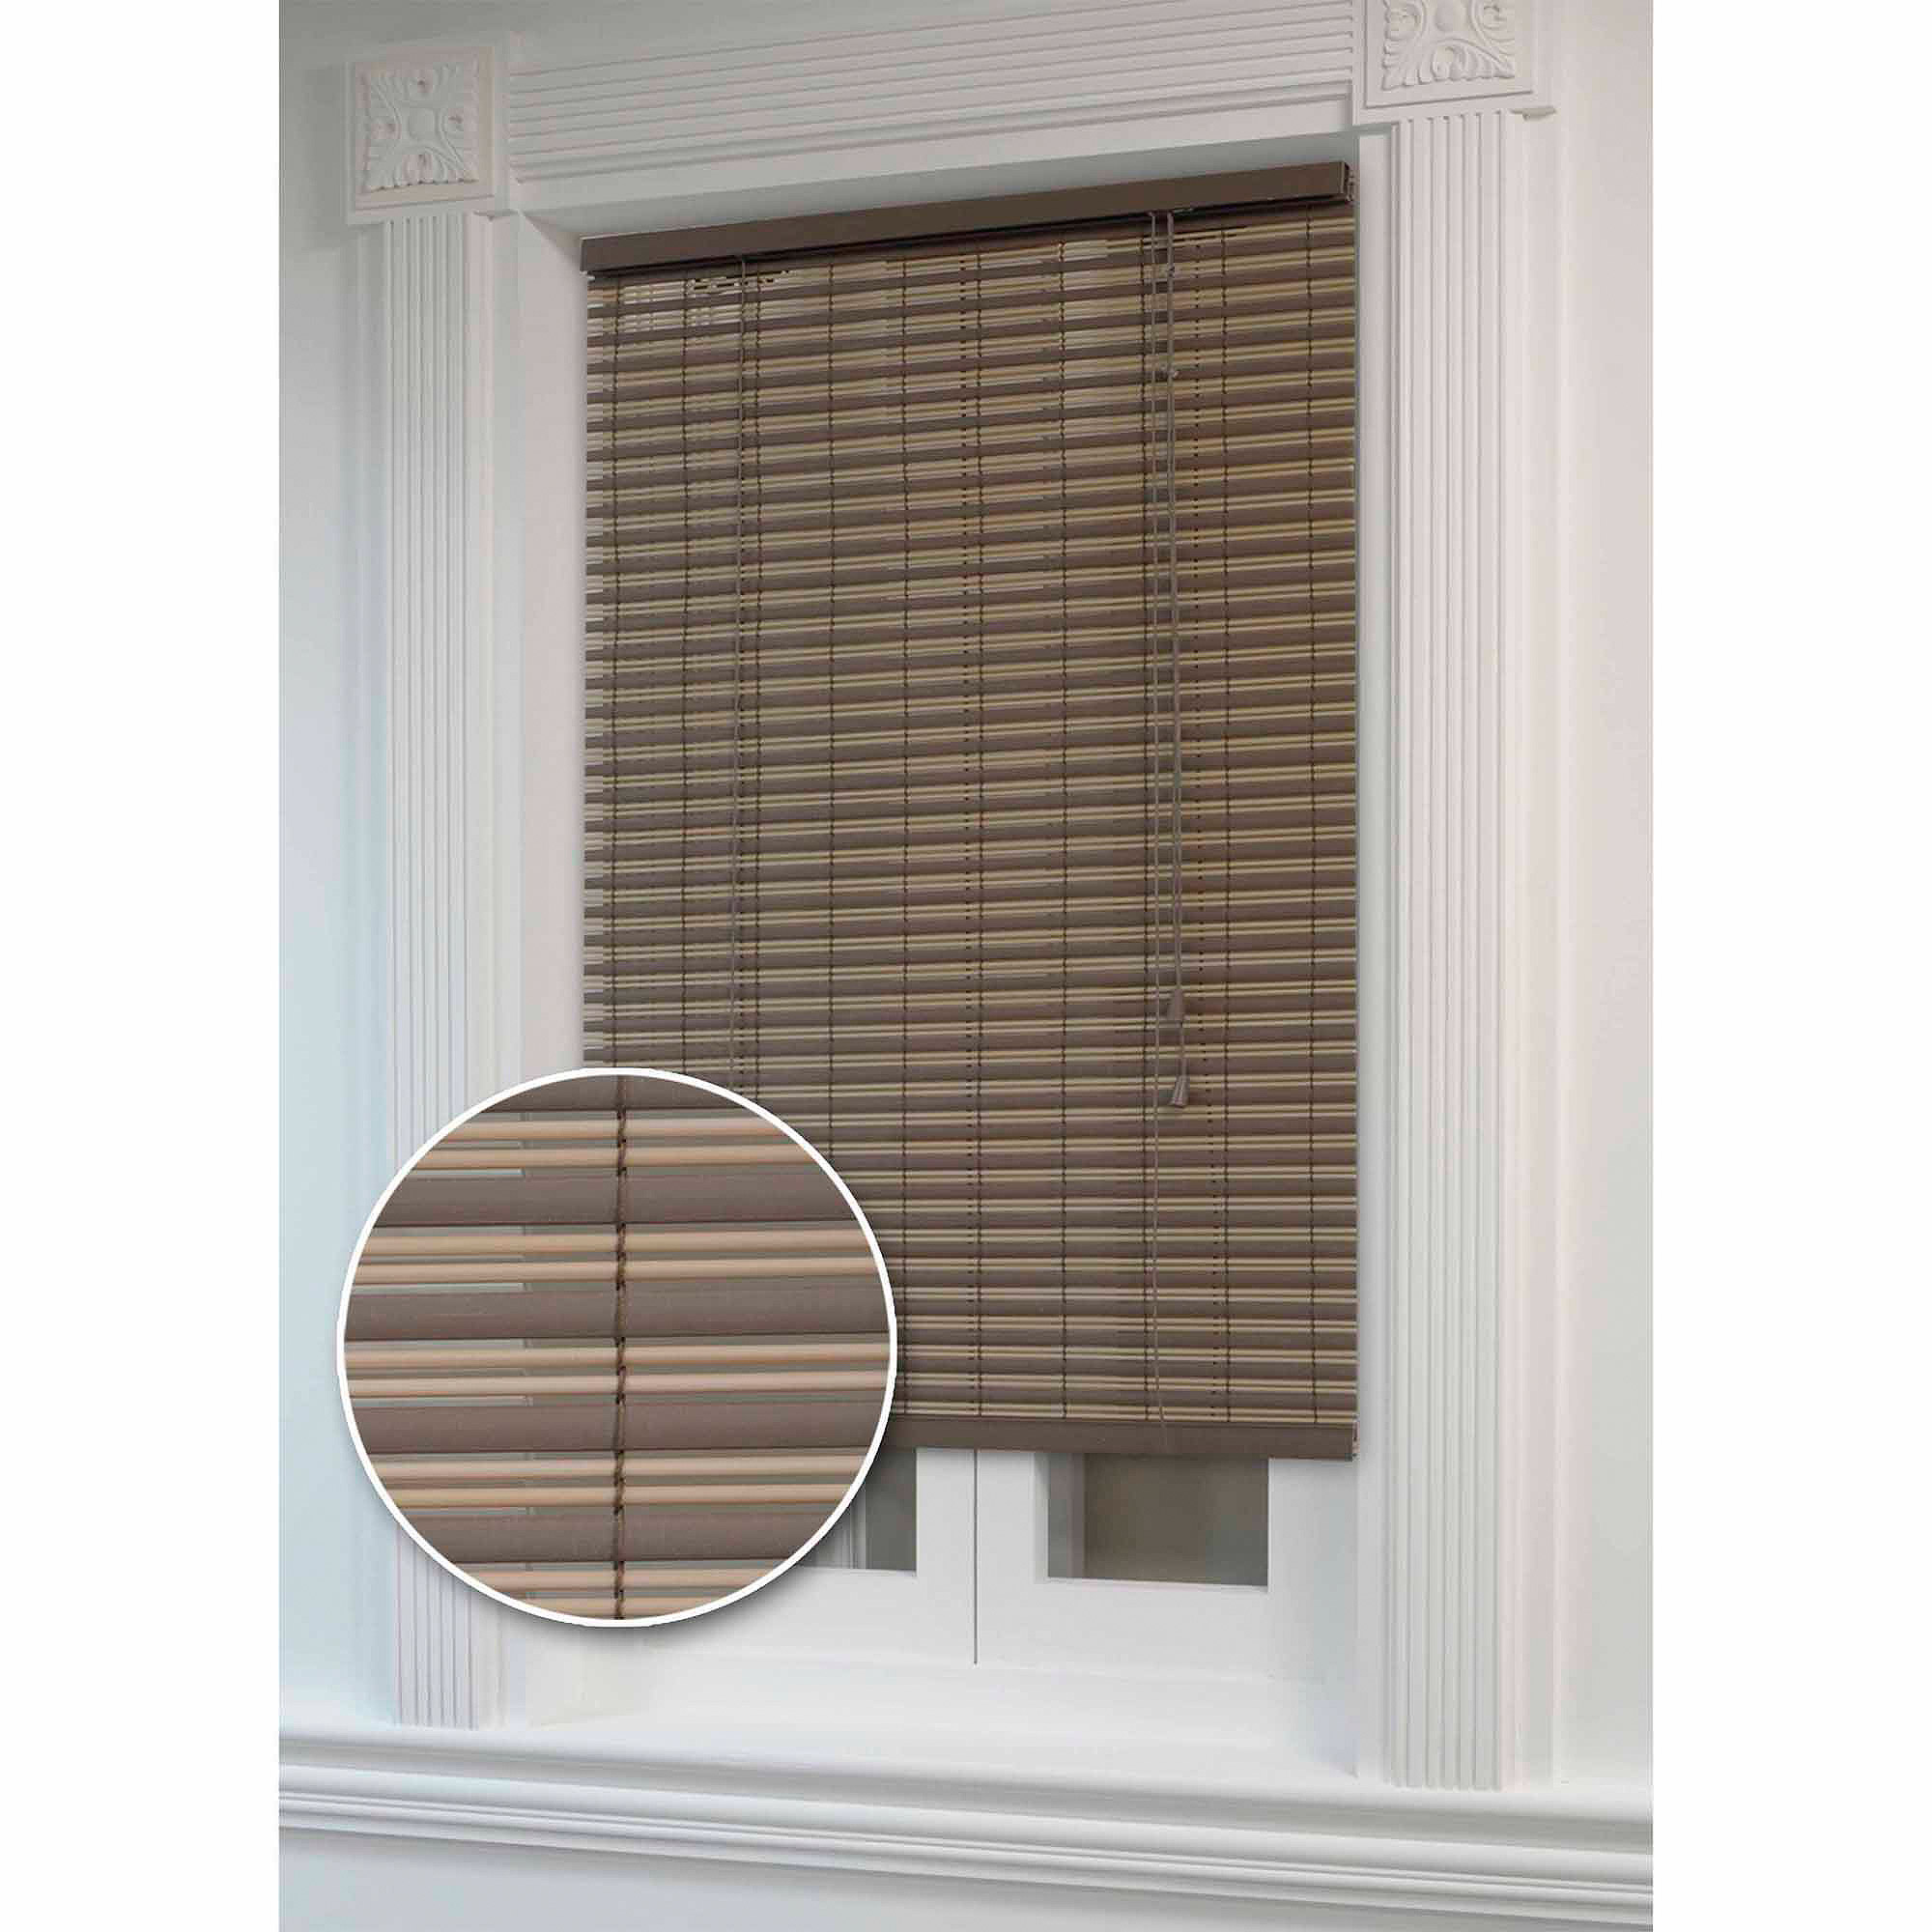 Outdoor patio blinds - Ashland Vinyl Roll Up Blinds